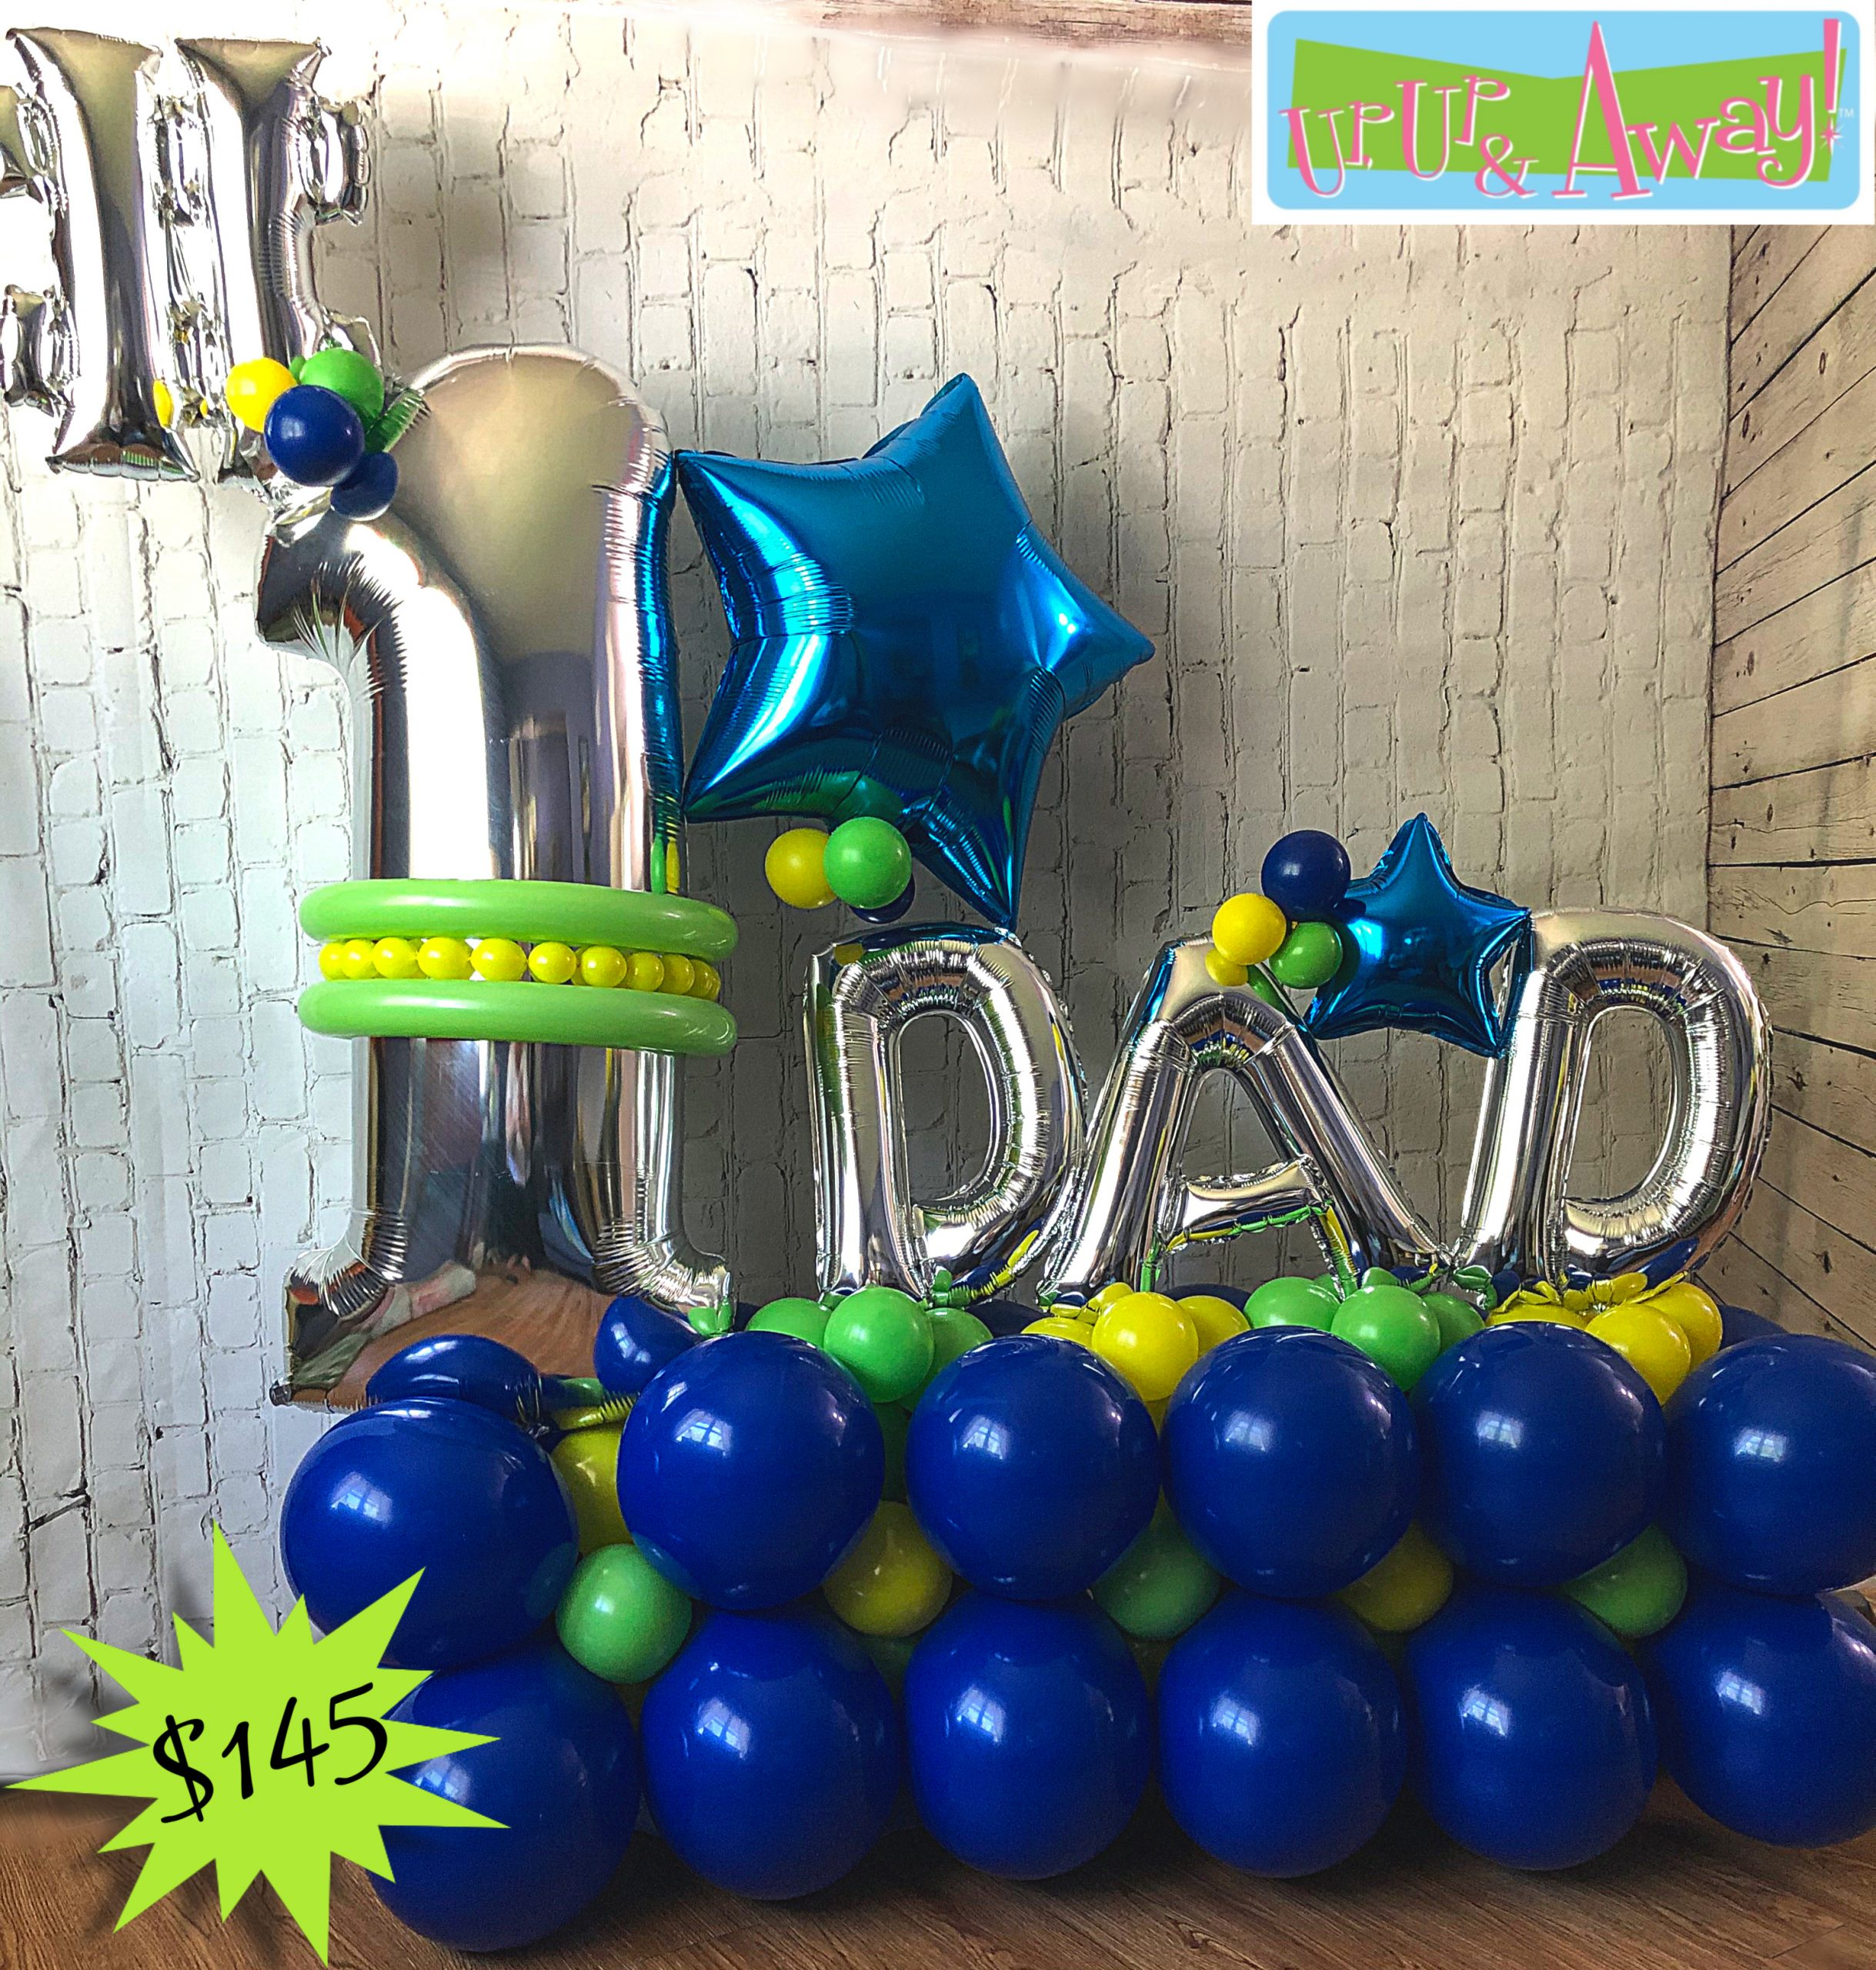 #1 Dad Balloon Delivery in Kansas City | Up, Up & Away!